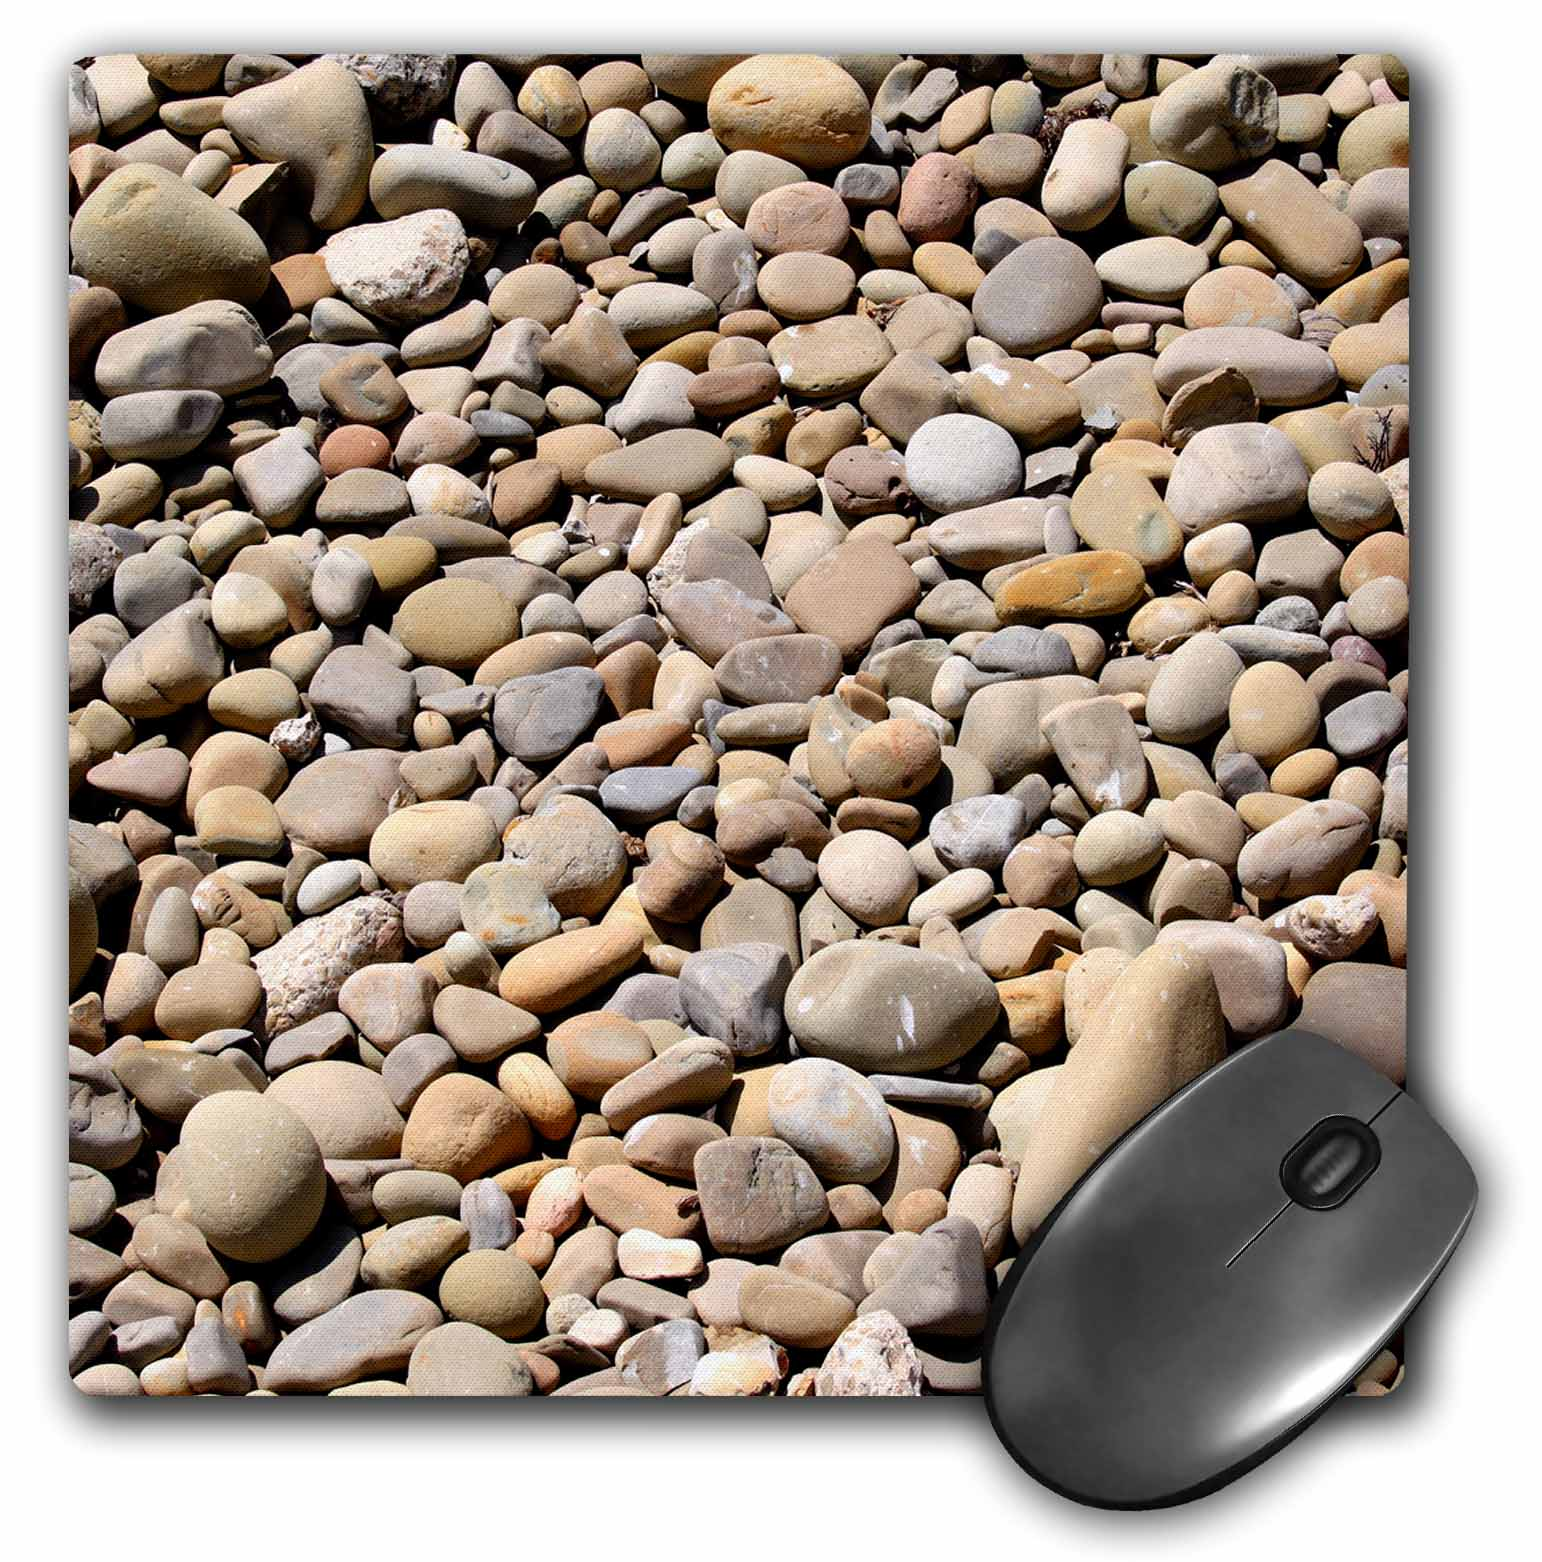 3dRose River rock pebbles with shades of different gray - stone, nature, pattern, round, zen, abstract, Mouse Pad, 8 by 8 inches